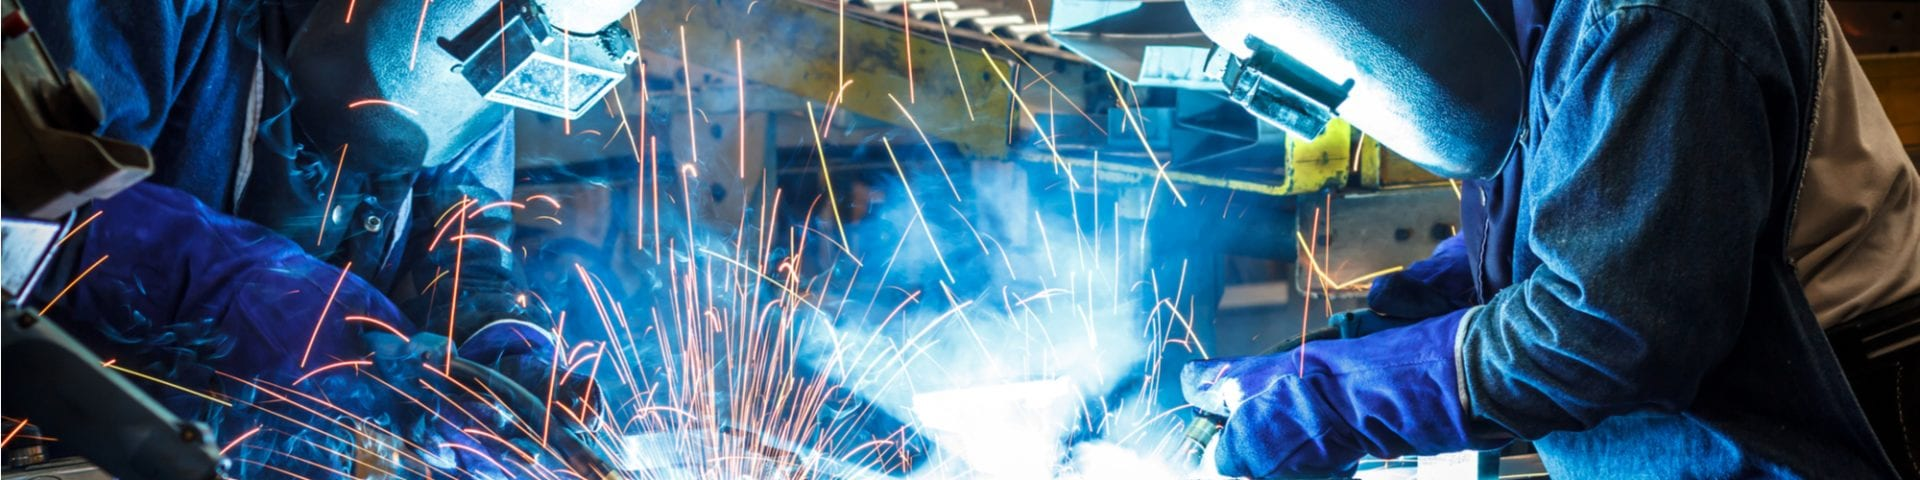 Welding Fume Health Hazards – There are Many!!!